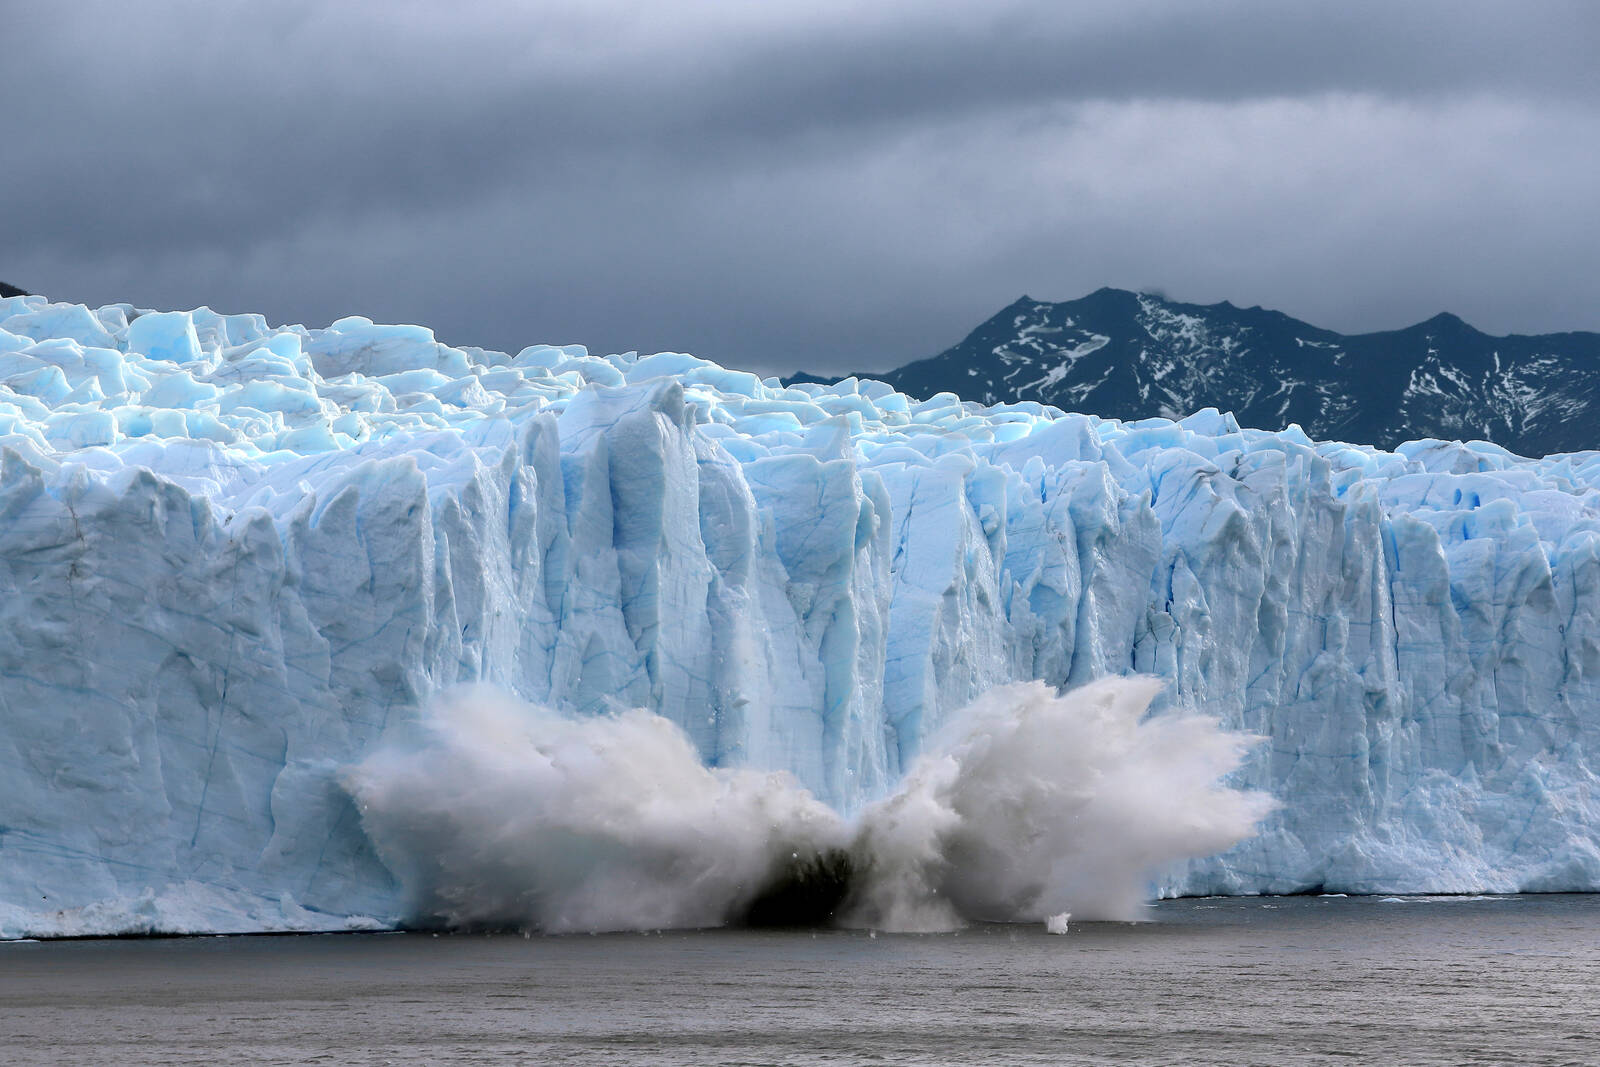 A piece of the Perito Moreno glacier, part of the Southern Patagonian Ice Field, breaks off and crashes into lake Argentina in the Los Glaciares National Park on April 5, 2019 in Santa Cruz province, Argentina. Credit: David Silverman/Getty Images